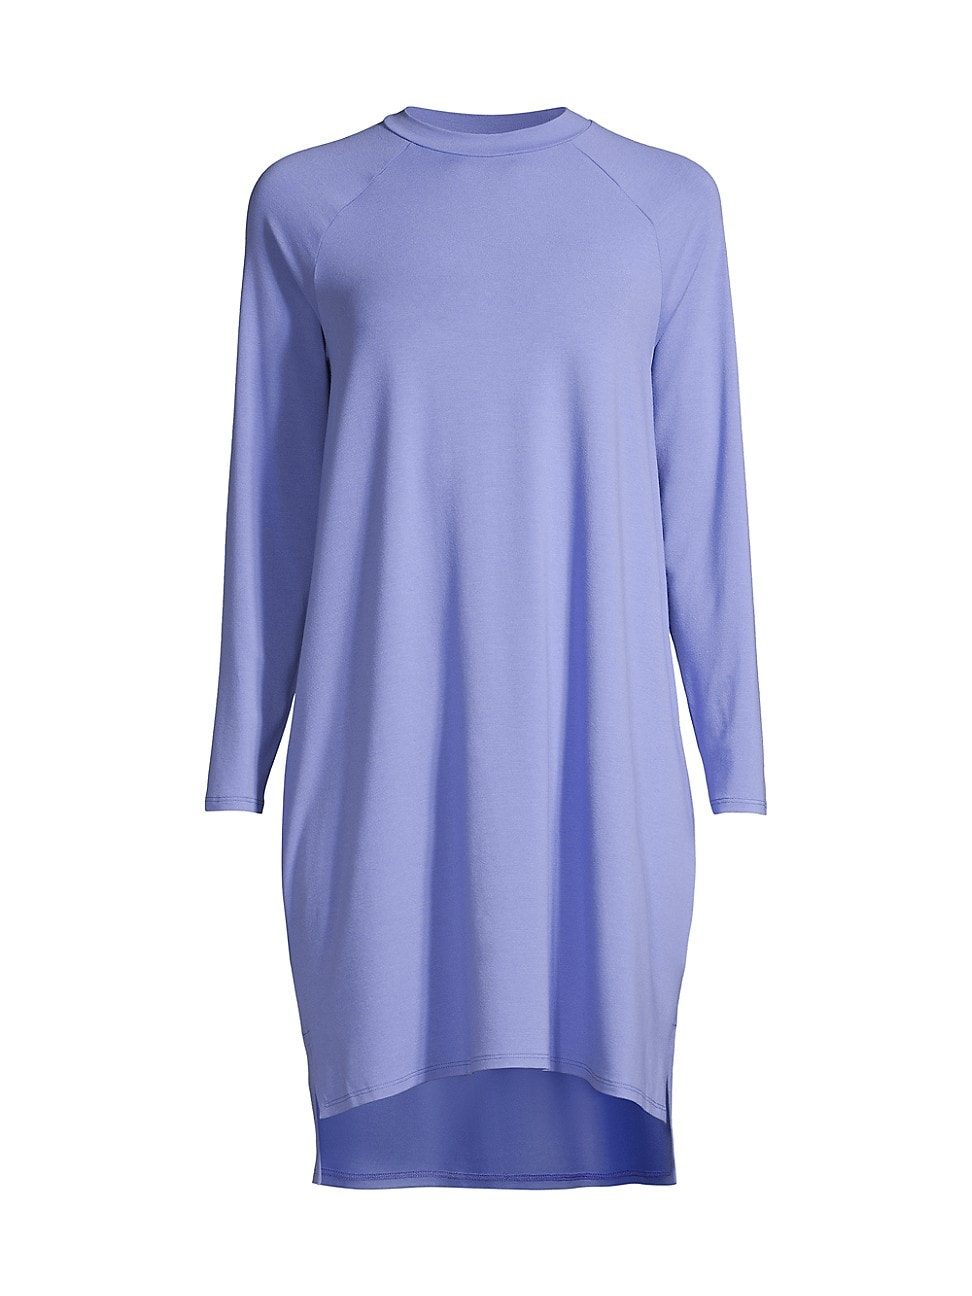 Eileen Fisher WOMEN'S RAGLAN T-SHIRT DRESS